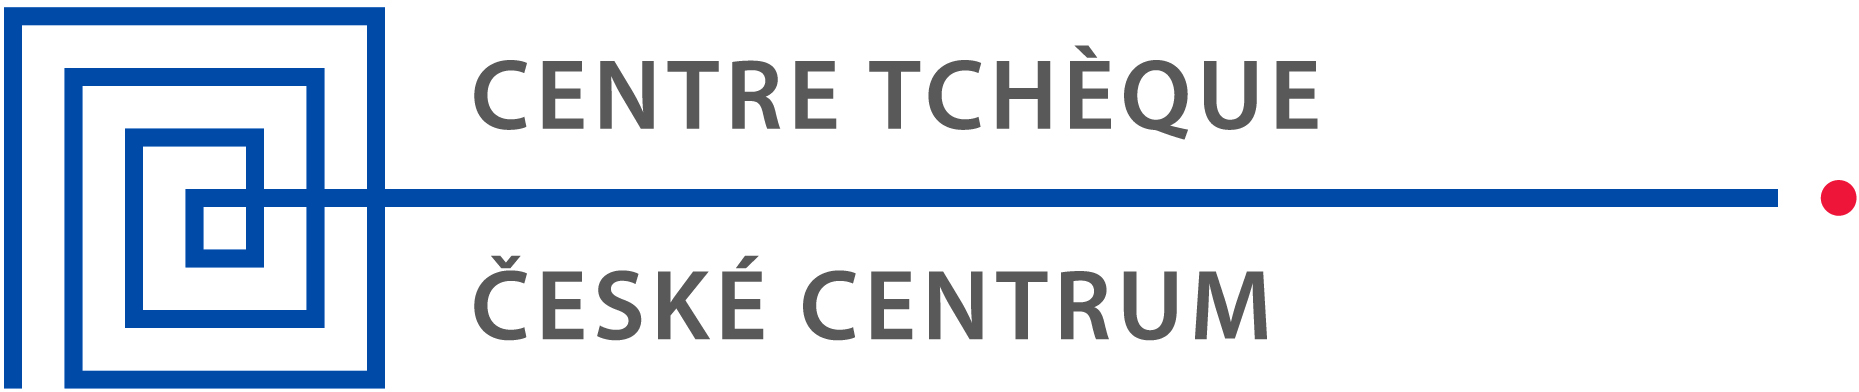 Centre tcheque de Paris